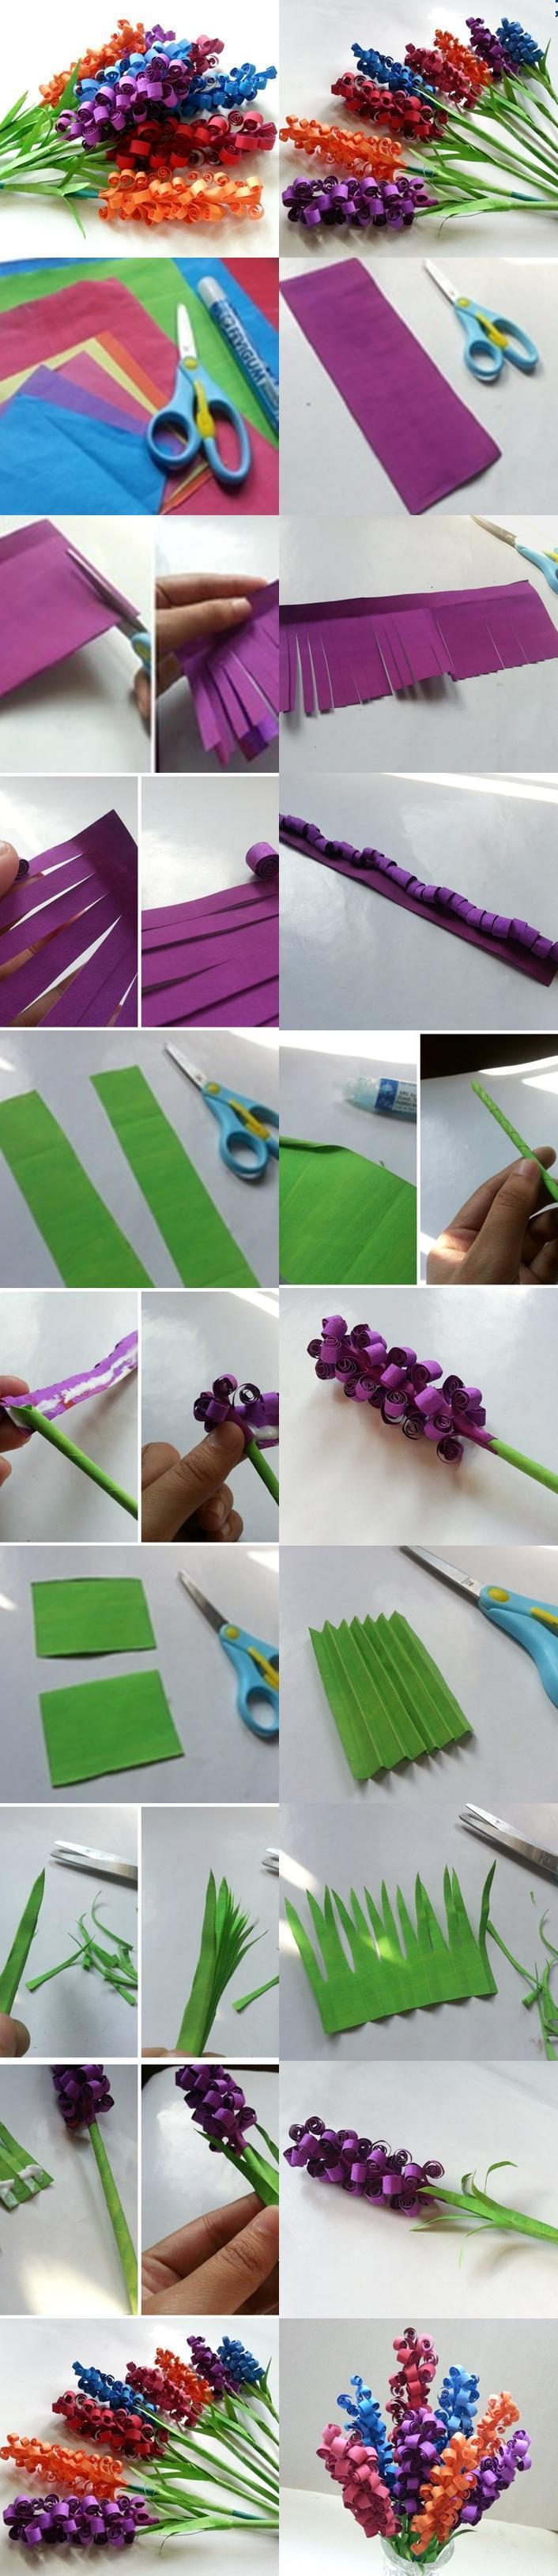 diy-swirly-paper-flowers